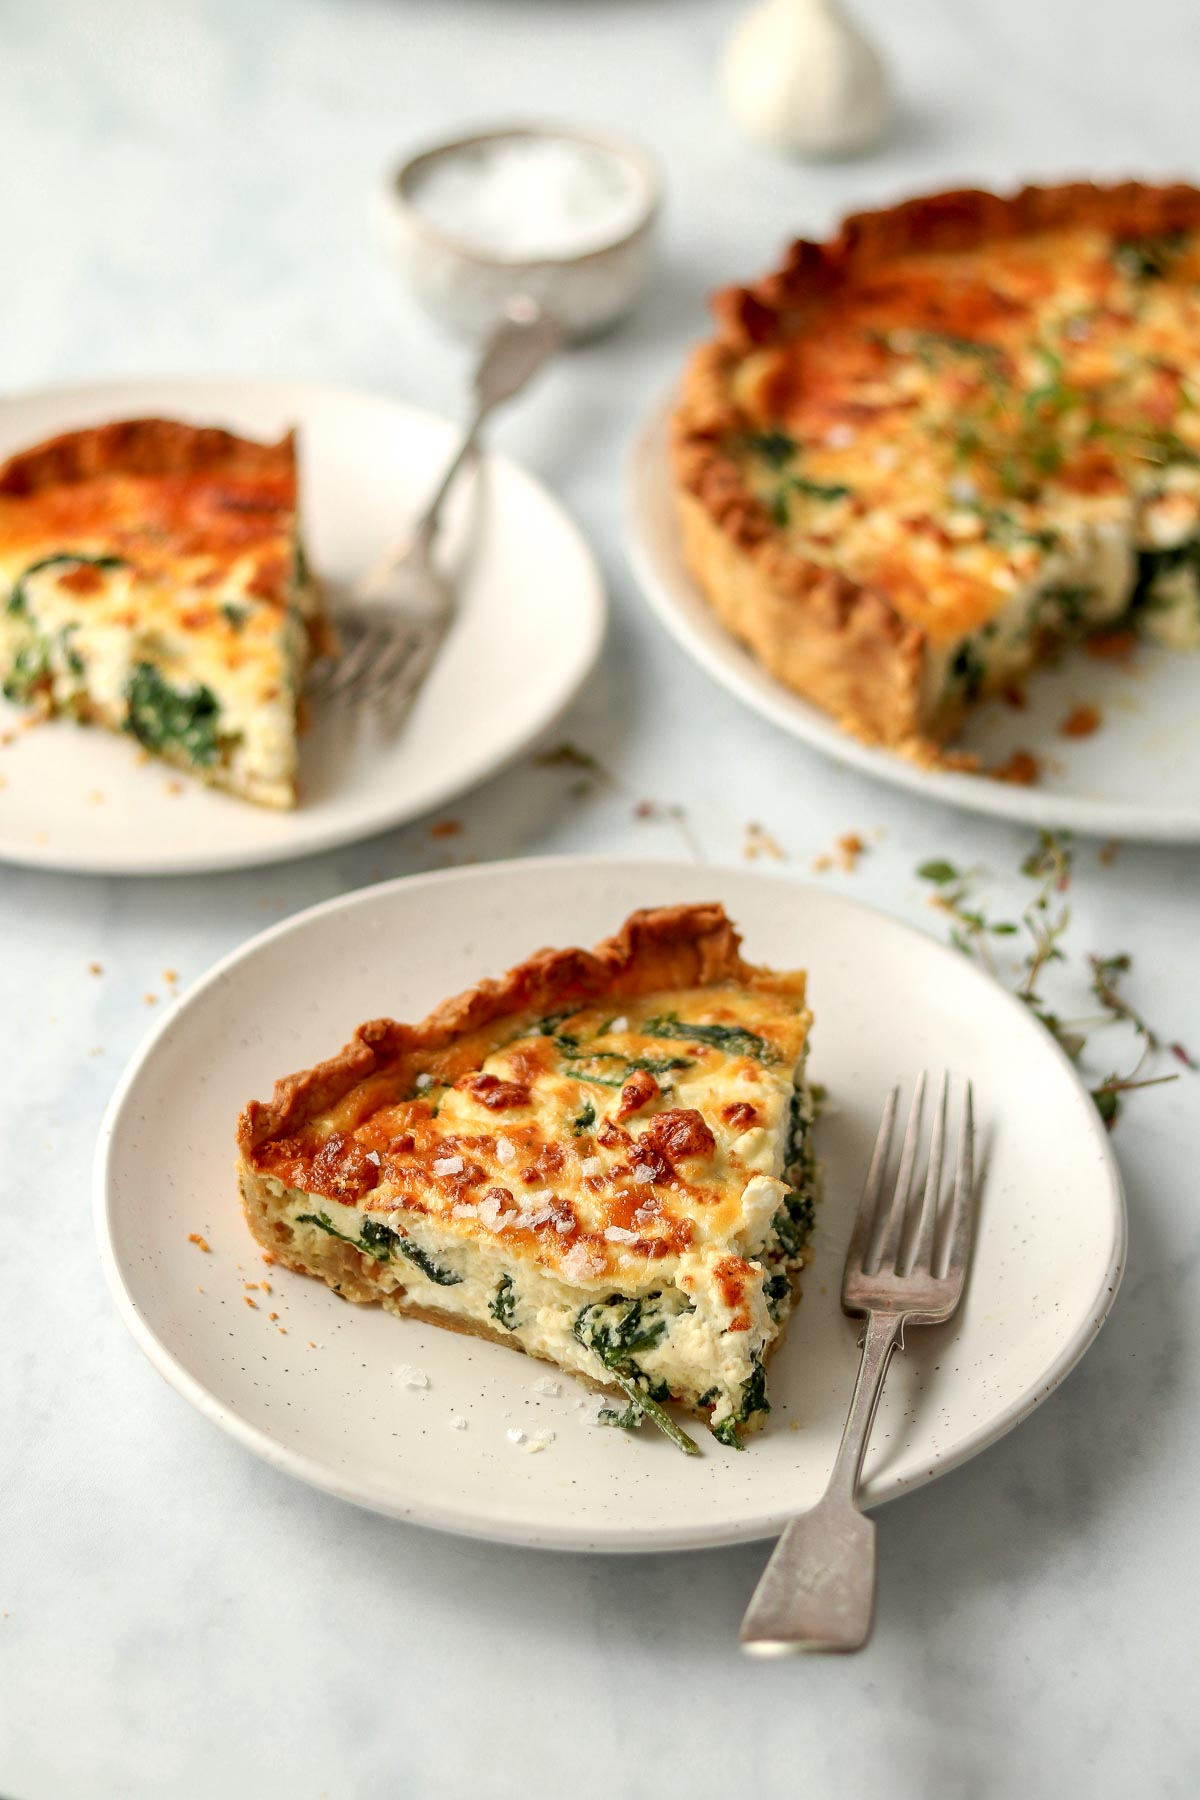 Slice of quiche on plate